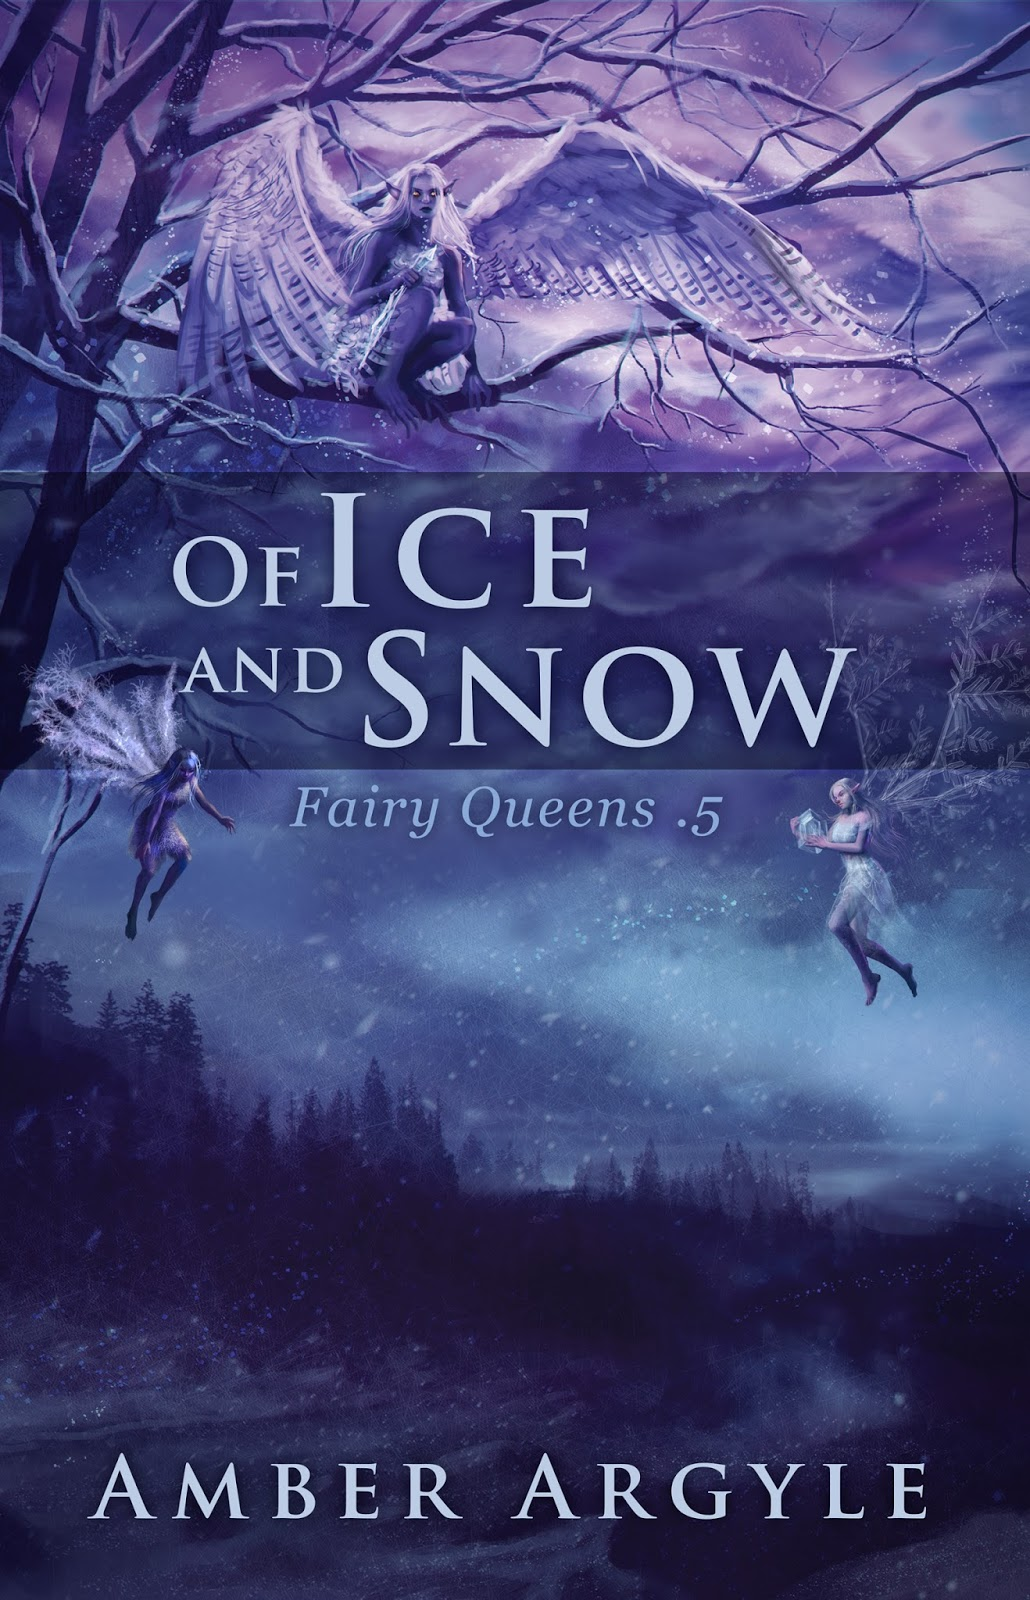 Pretty Book Cover Queen ~ Two chicks on books cover reveal of ice and snow by